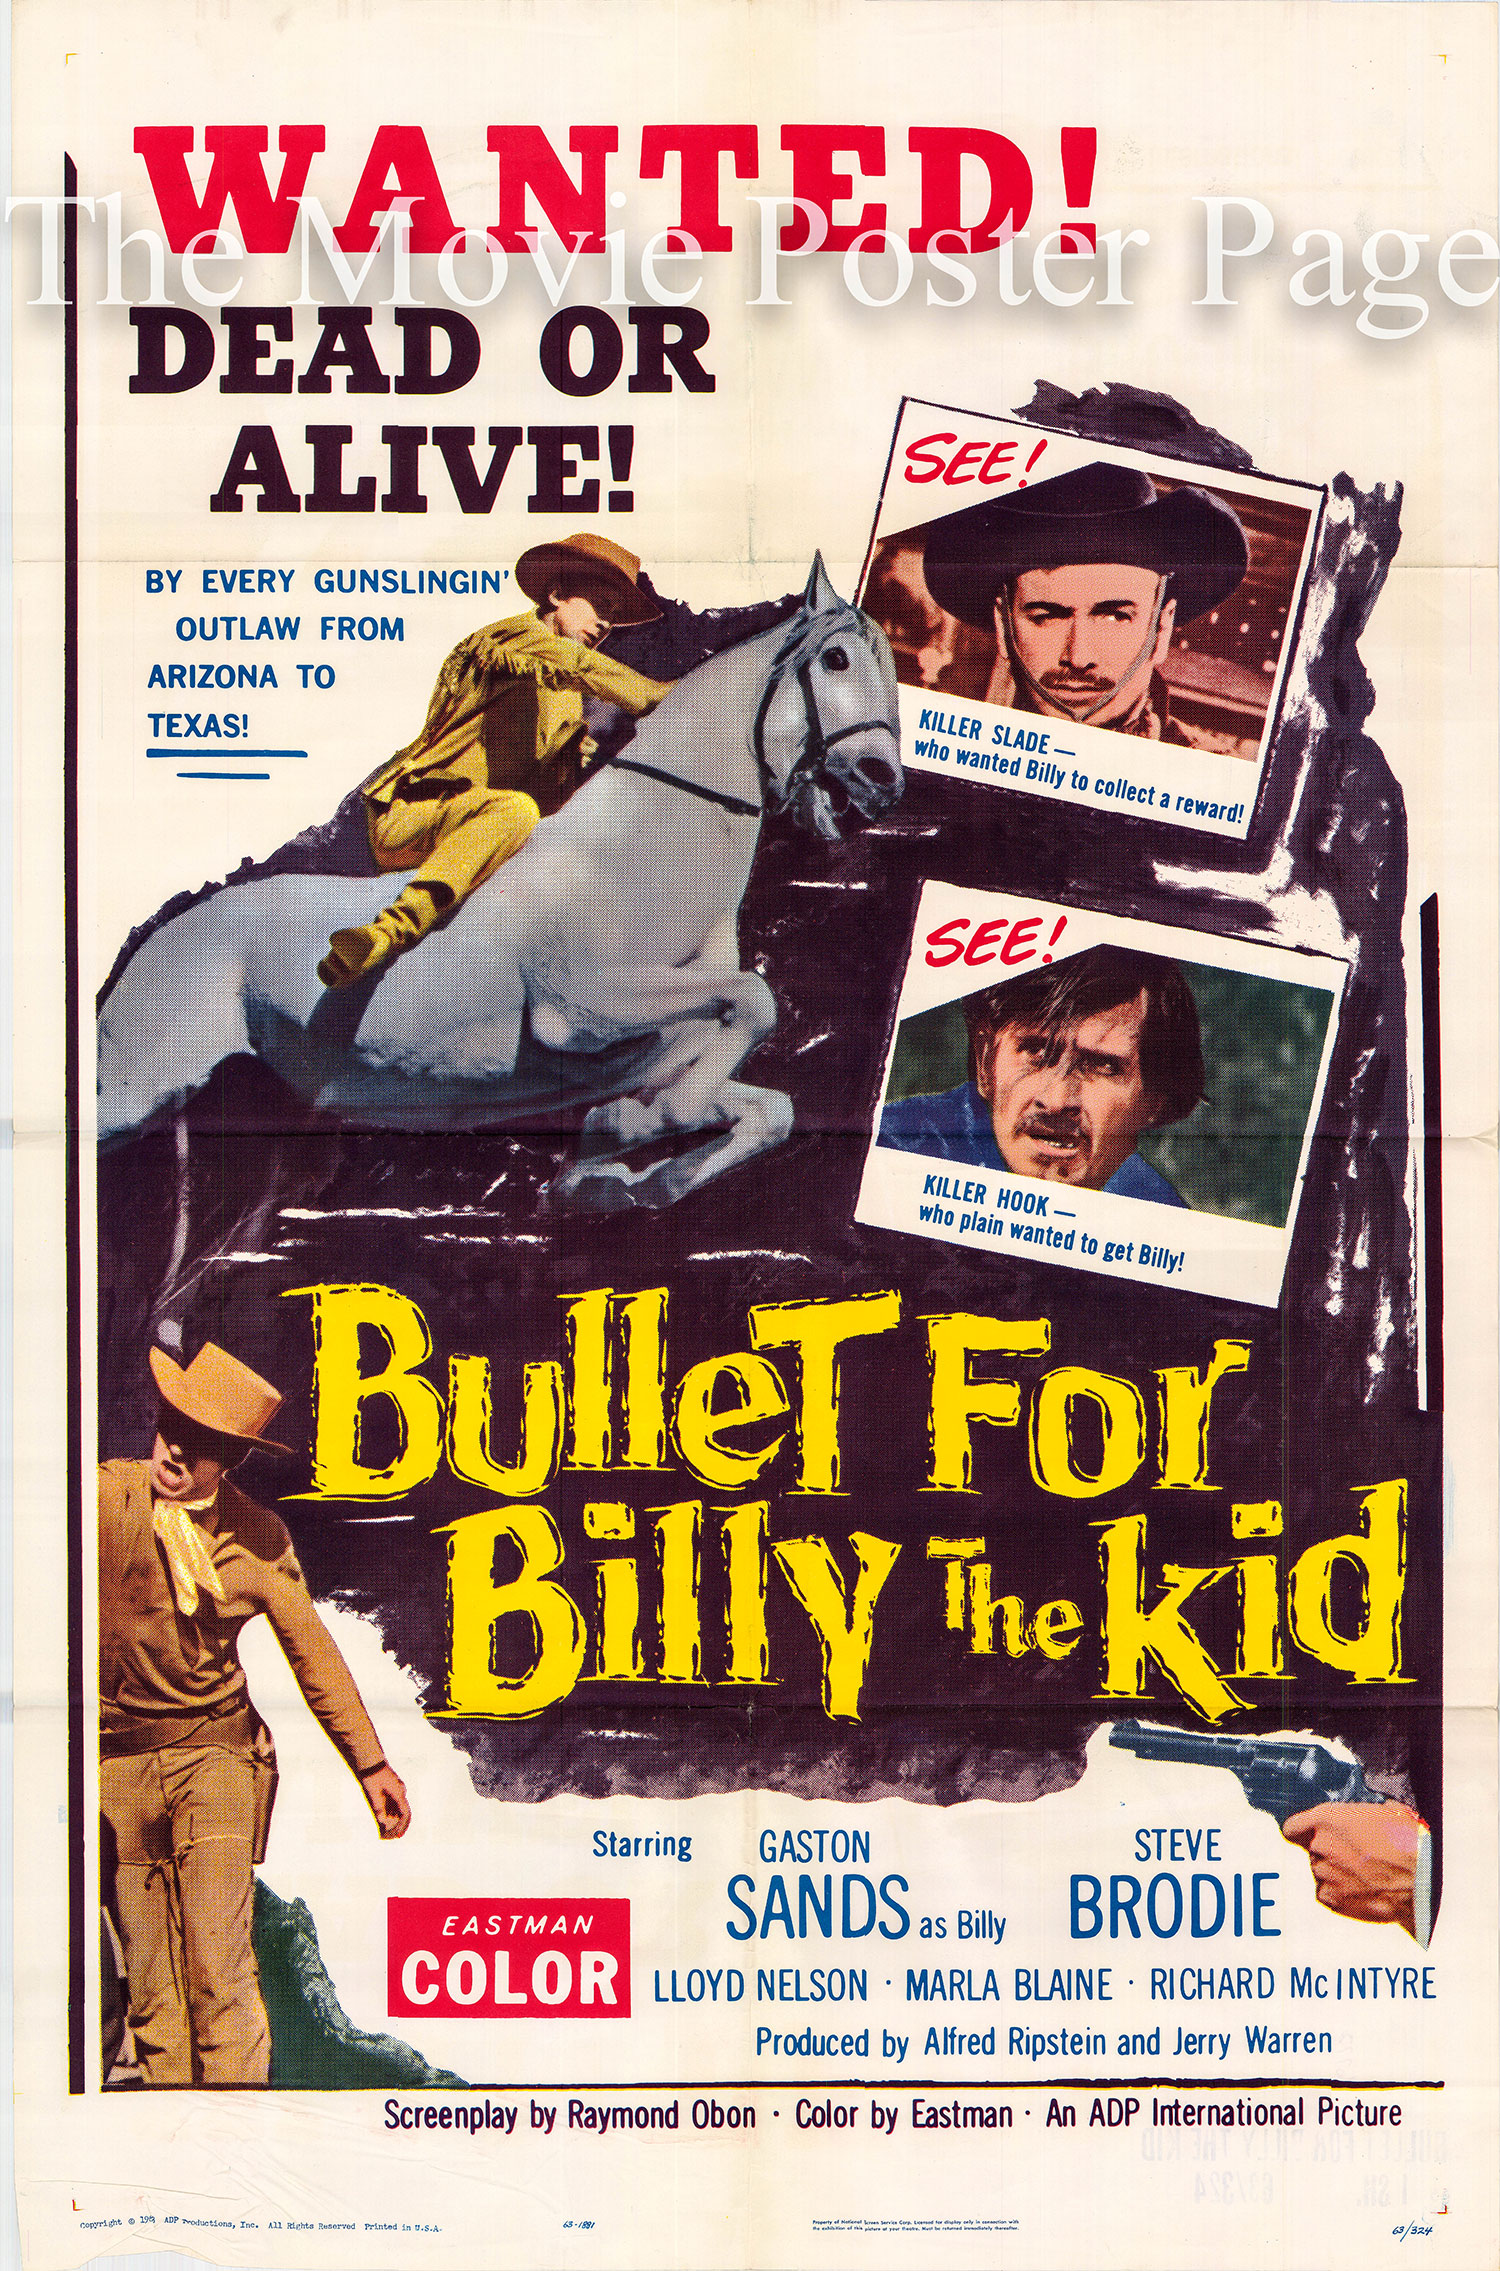 Pictured is a US one-sheet poster for the 1963 Rafael Baledon film A Bullet for Billy the Kid starring Gaston Sands.